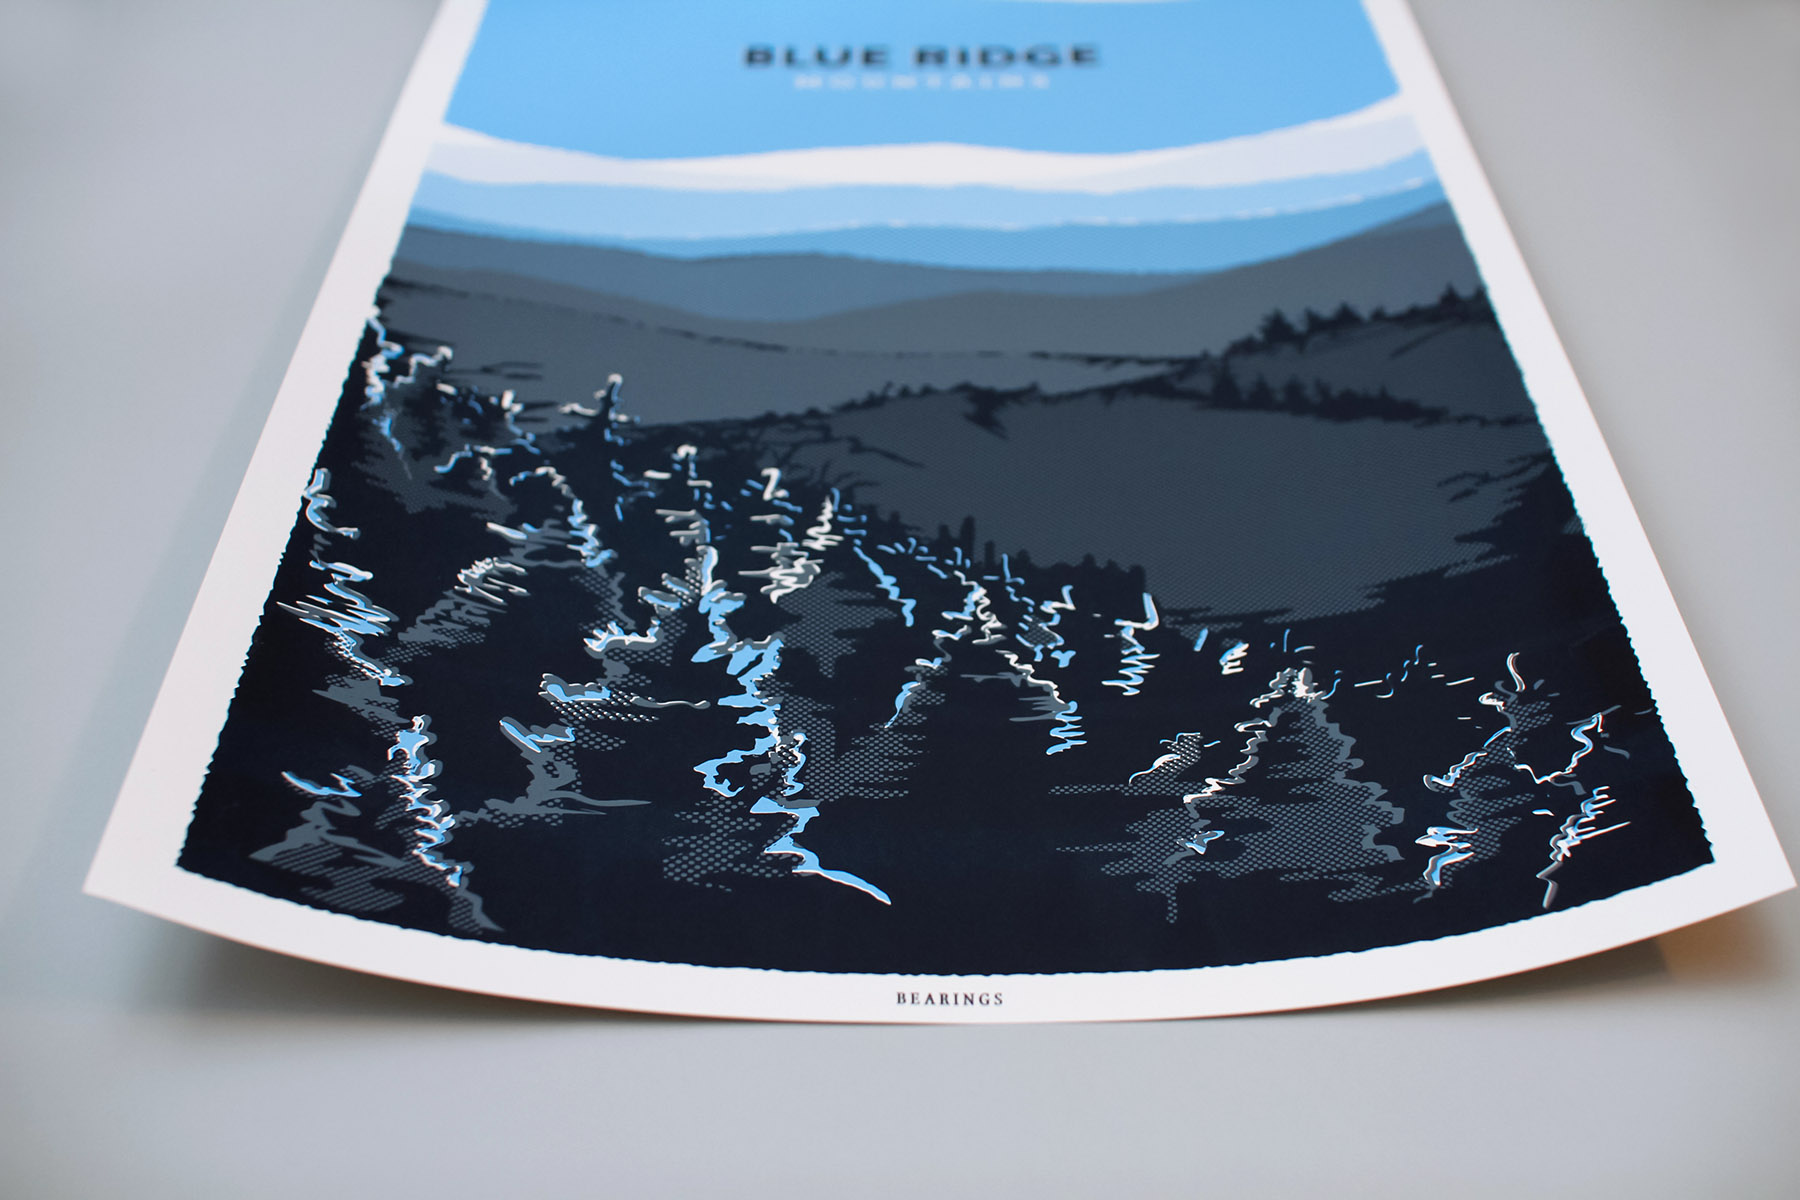 Graphic Designer Russell Shaw illustrated and designed this screen printed poster of the Blue Ridge Mountains for digital lifestyle publication Bearings Guide and it is sold in Citizen Supply in Atlanta Georgia.